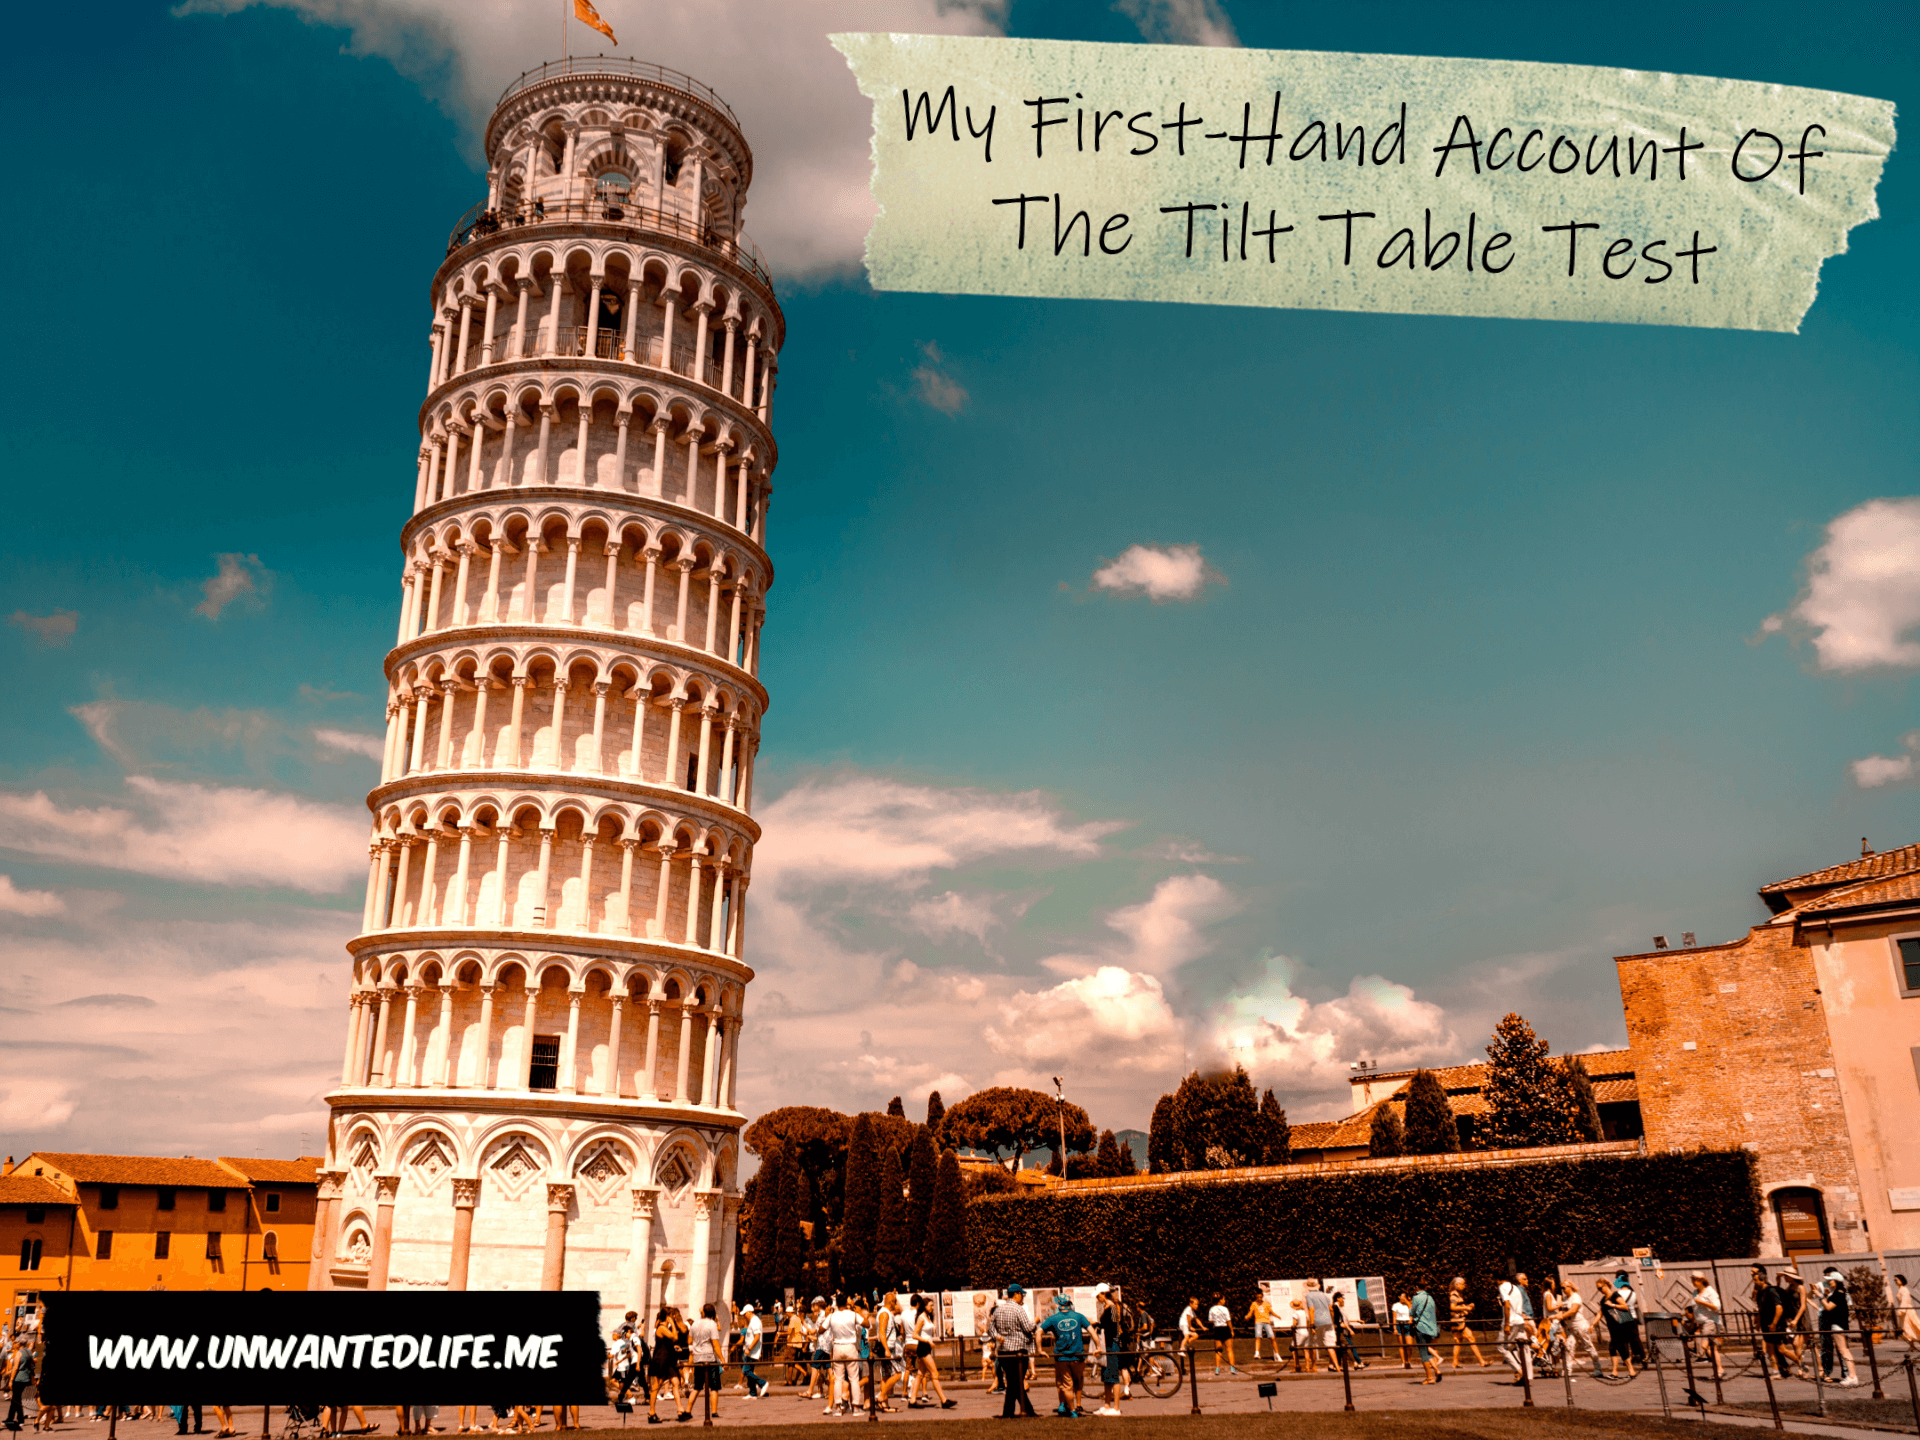 A picture of the Leaning Tower of Pisa to represent a tilt test. In the top right corner of the image is the articles title - My First-Hand Account Of The Tilt Table Test